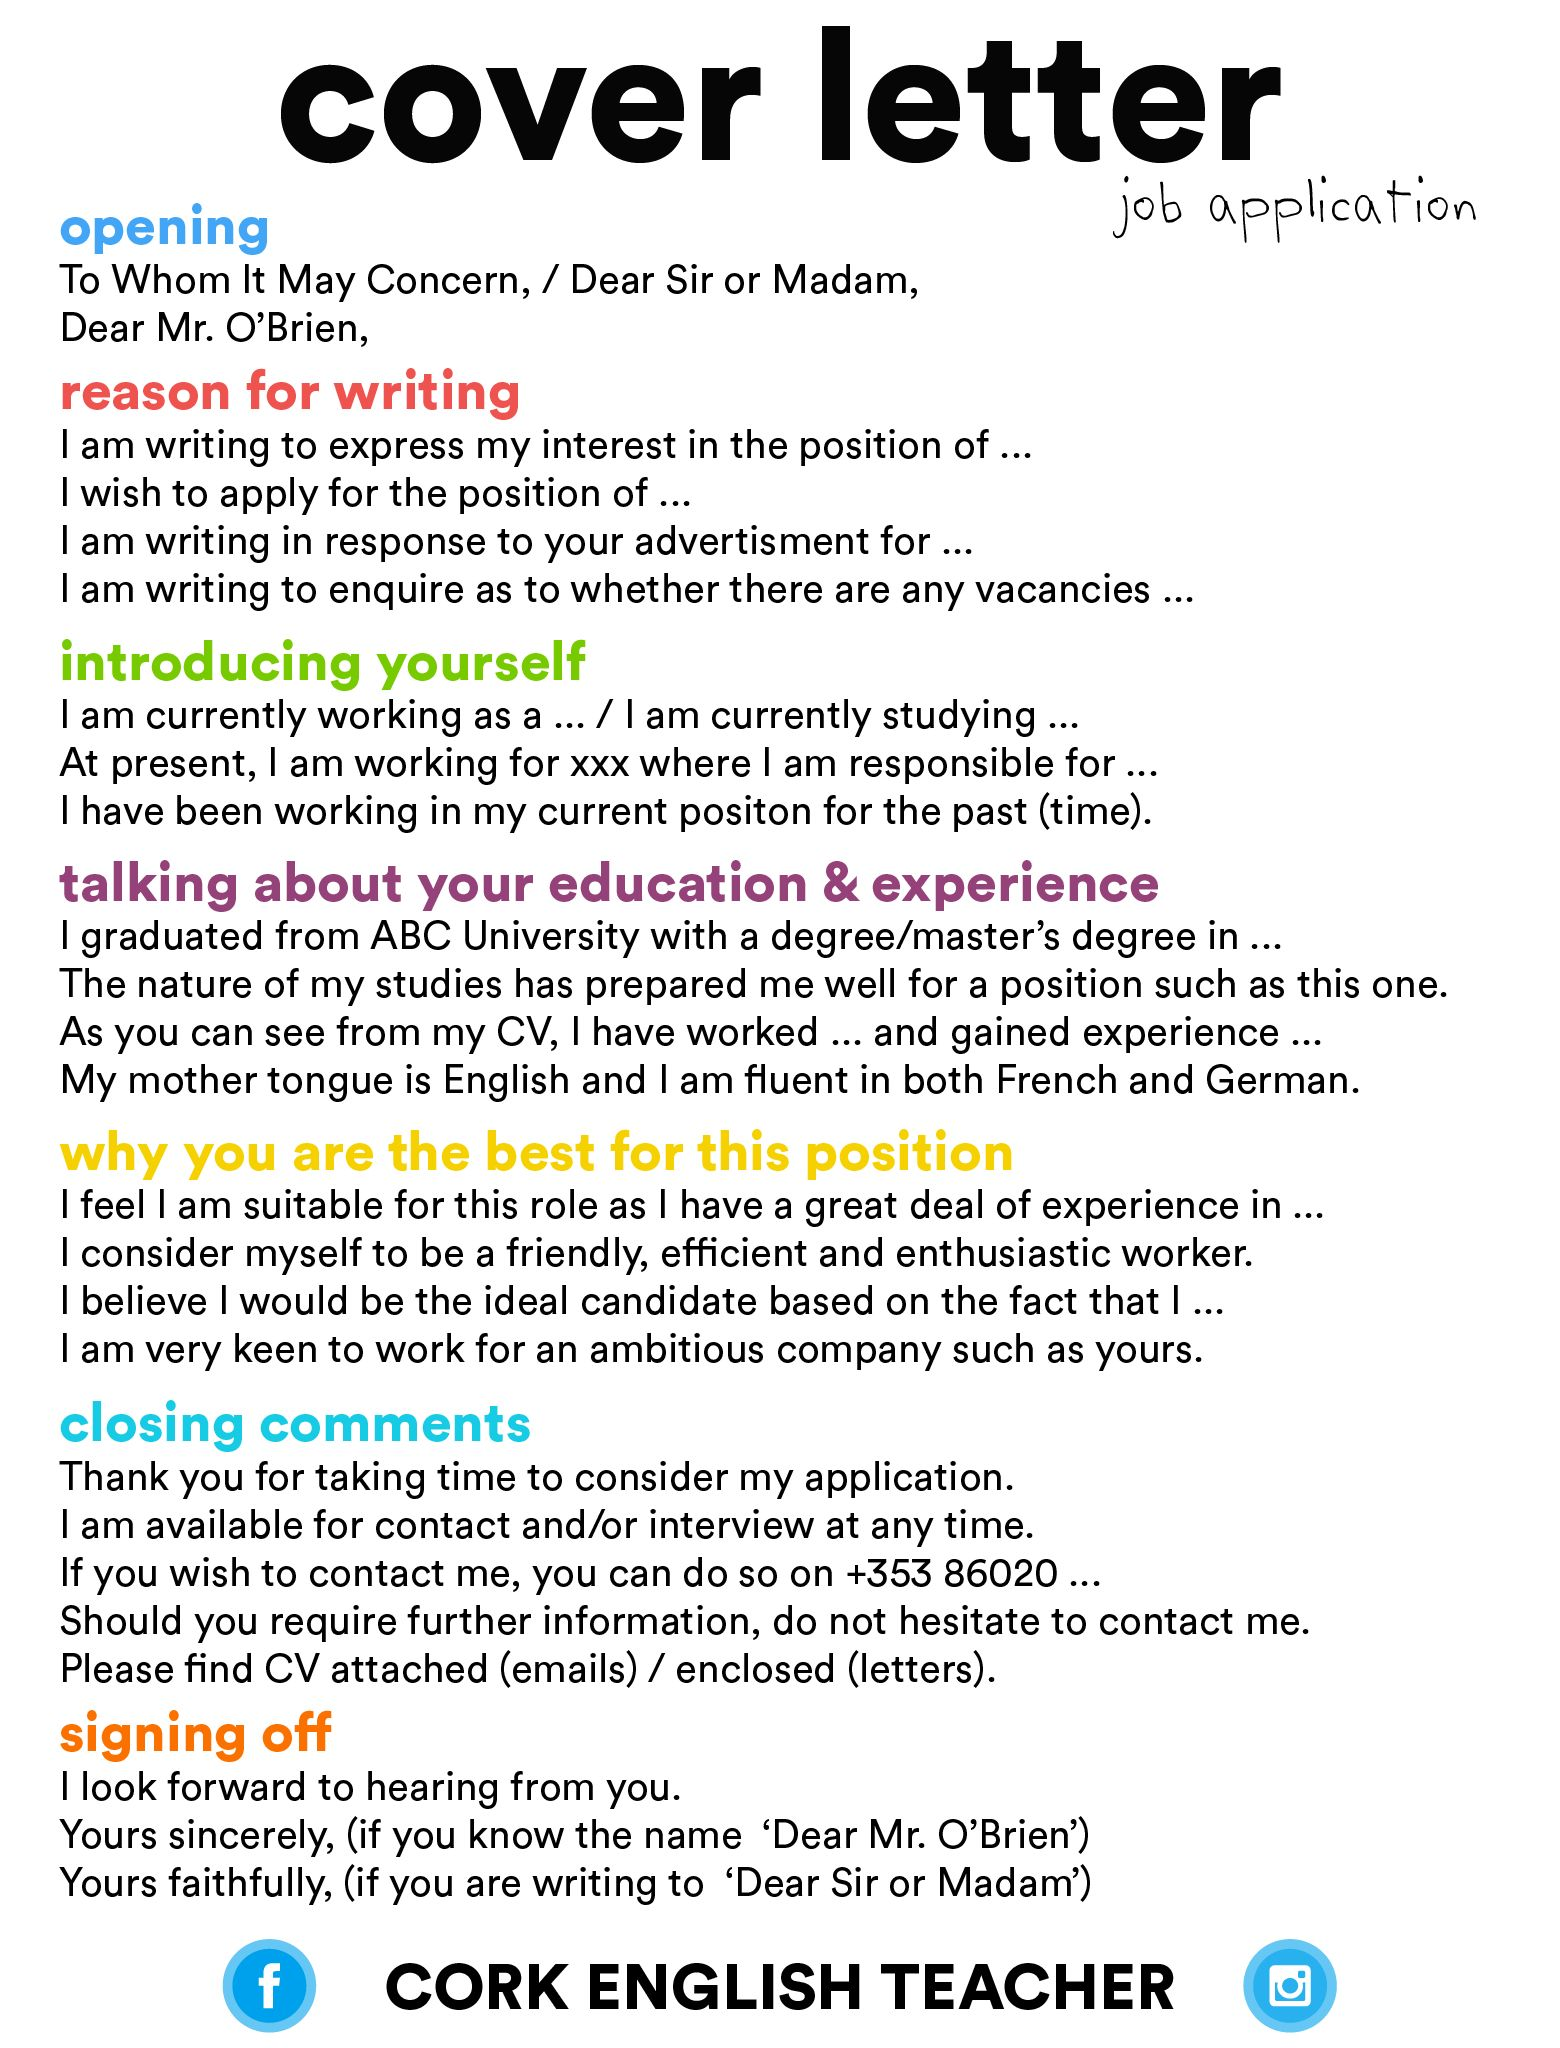 25+ Job Application Cover Letter (With images) Job cover